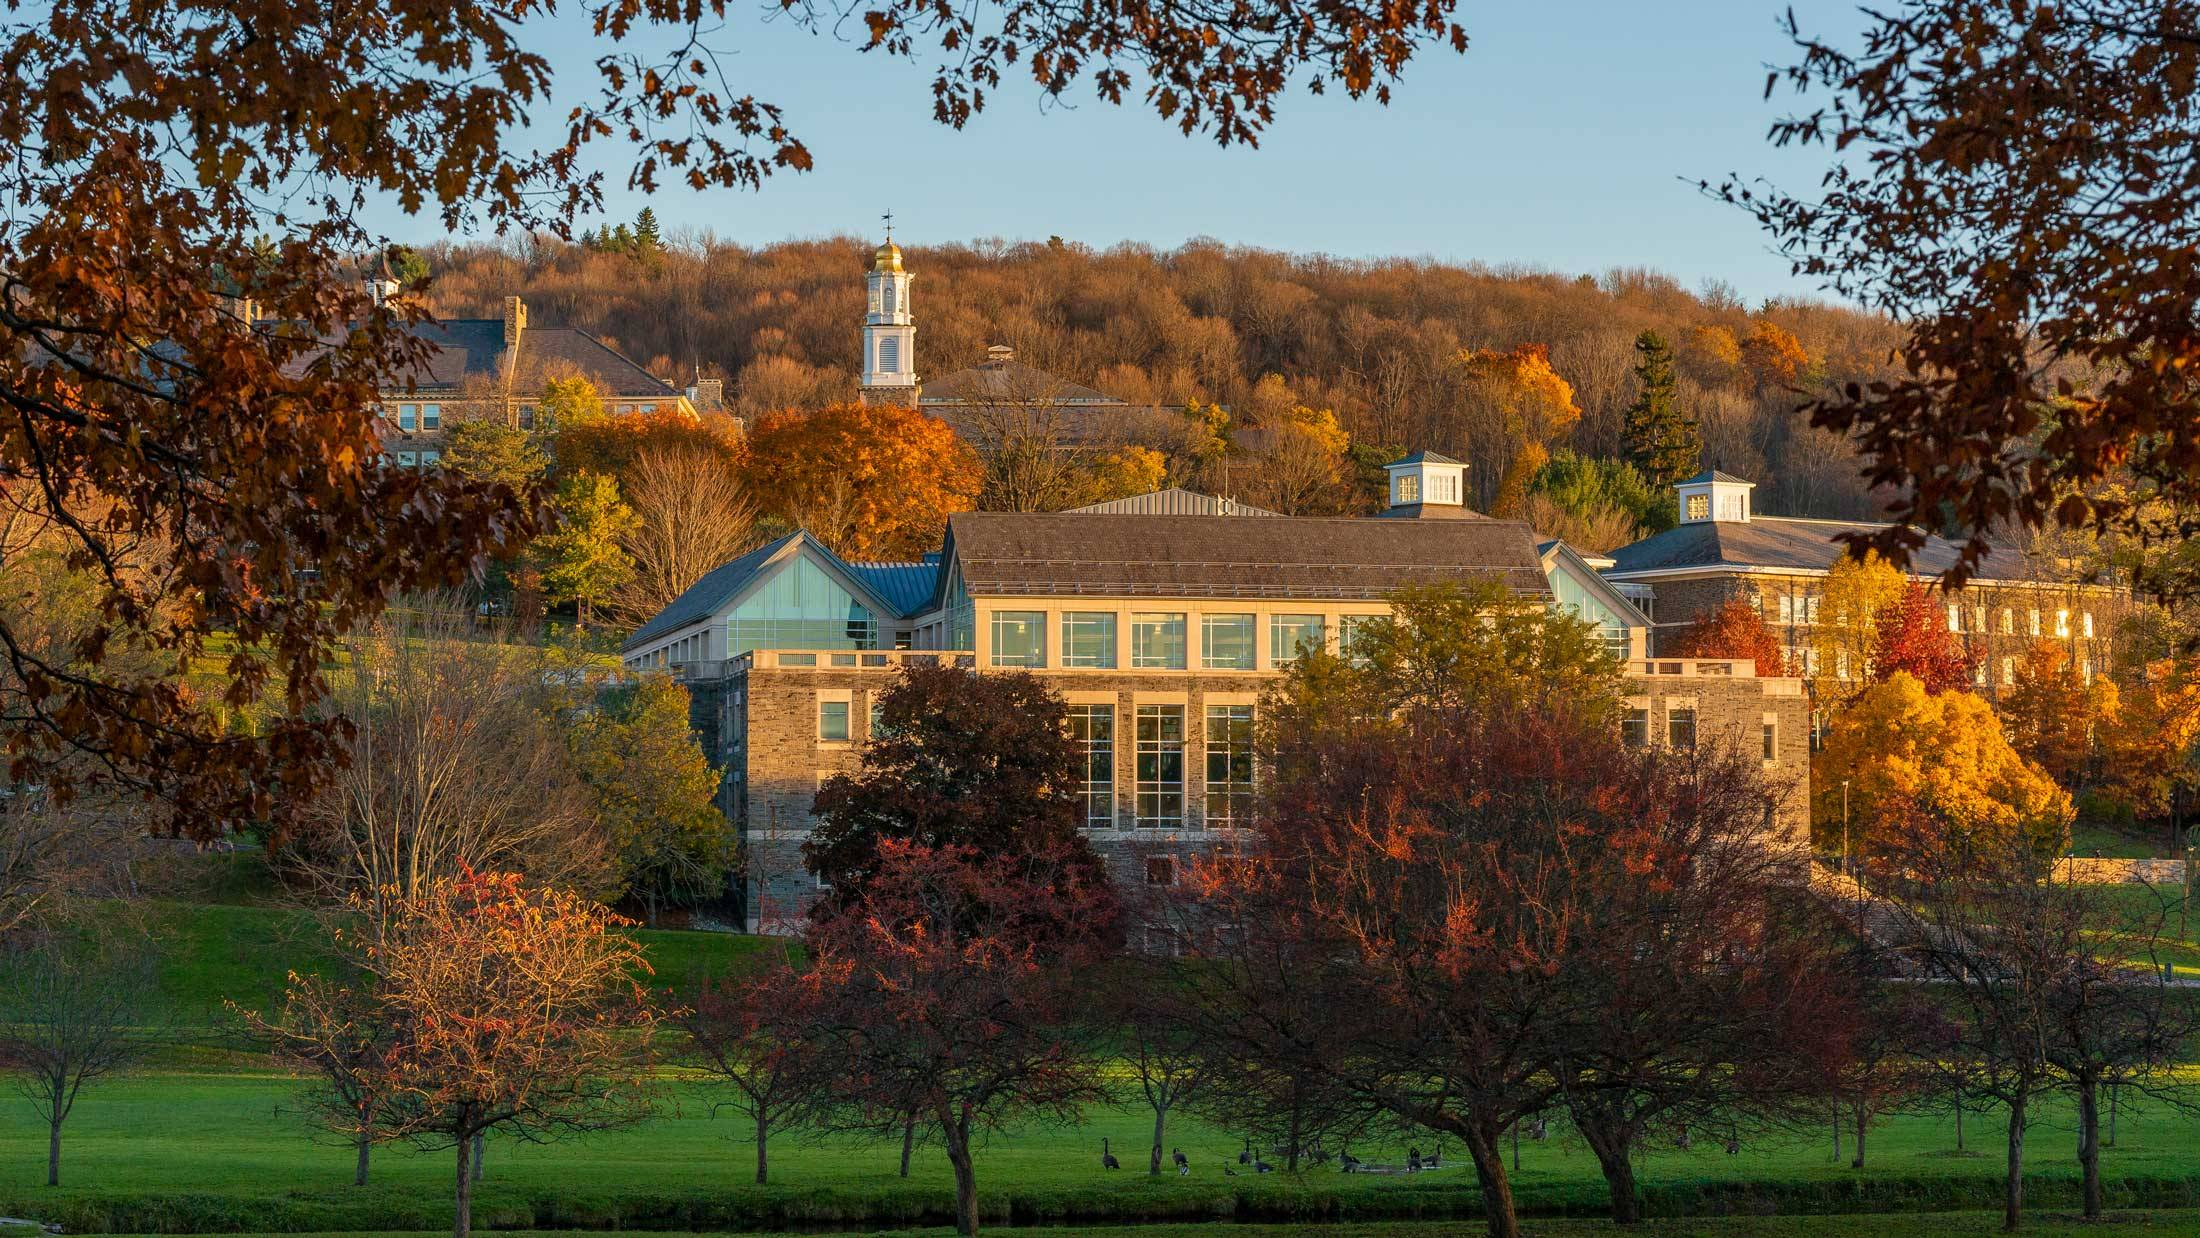 Campus scenery in autumn